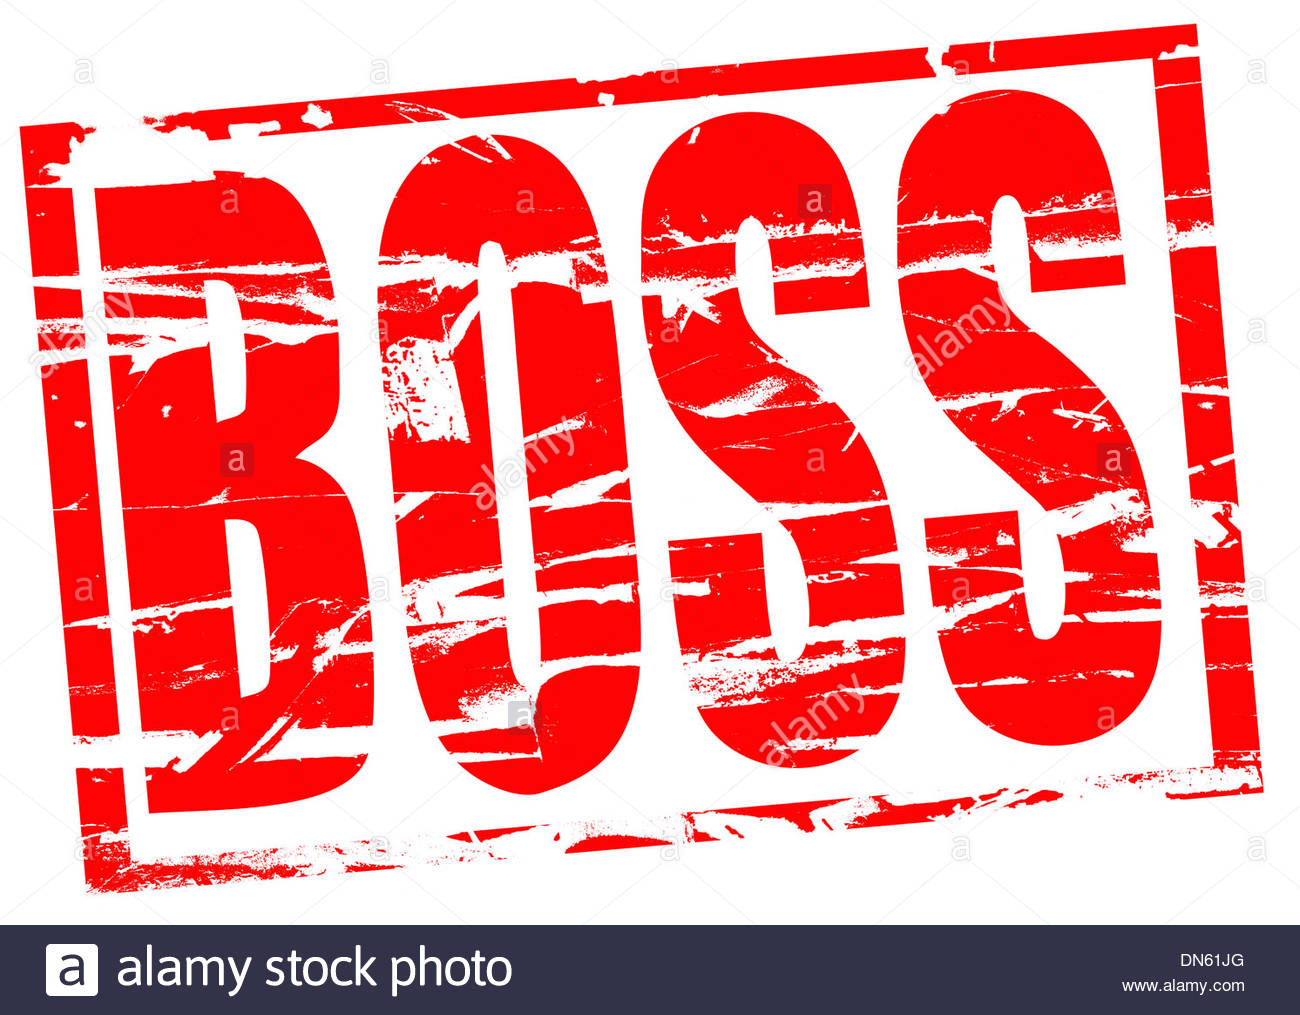 Digital composition Red rubber stamp effect - Boss - Stock Image